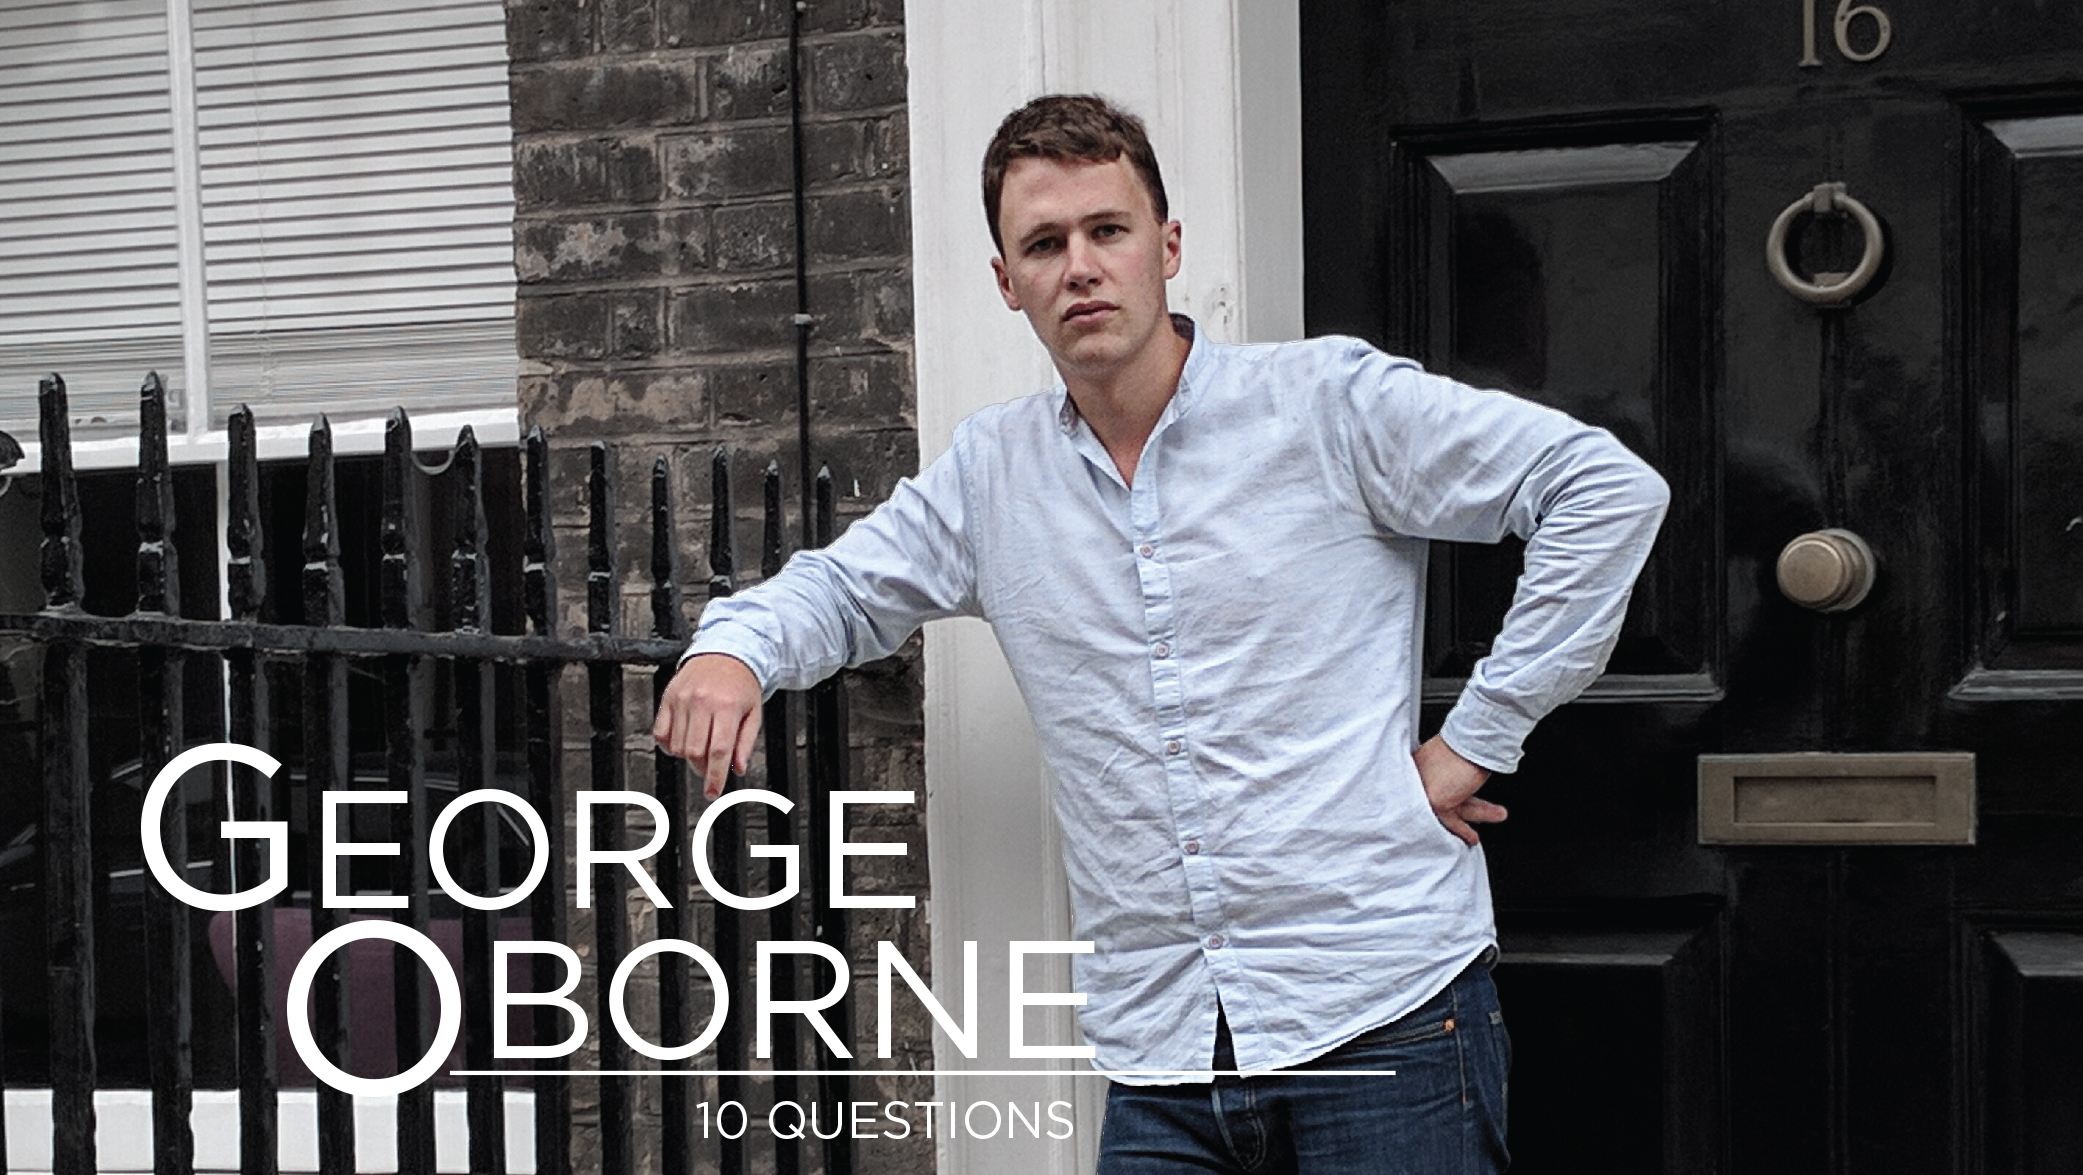 10 Questions - George Oborne